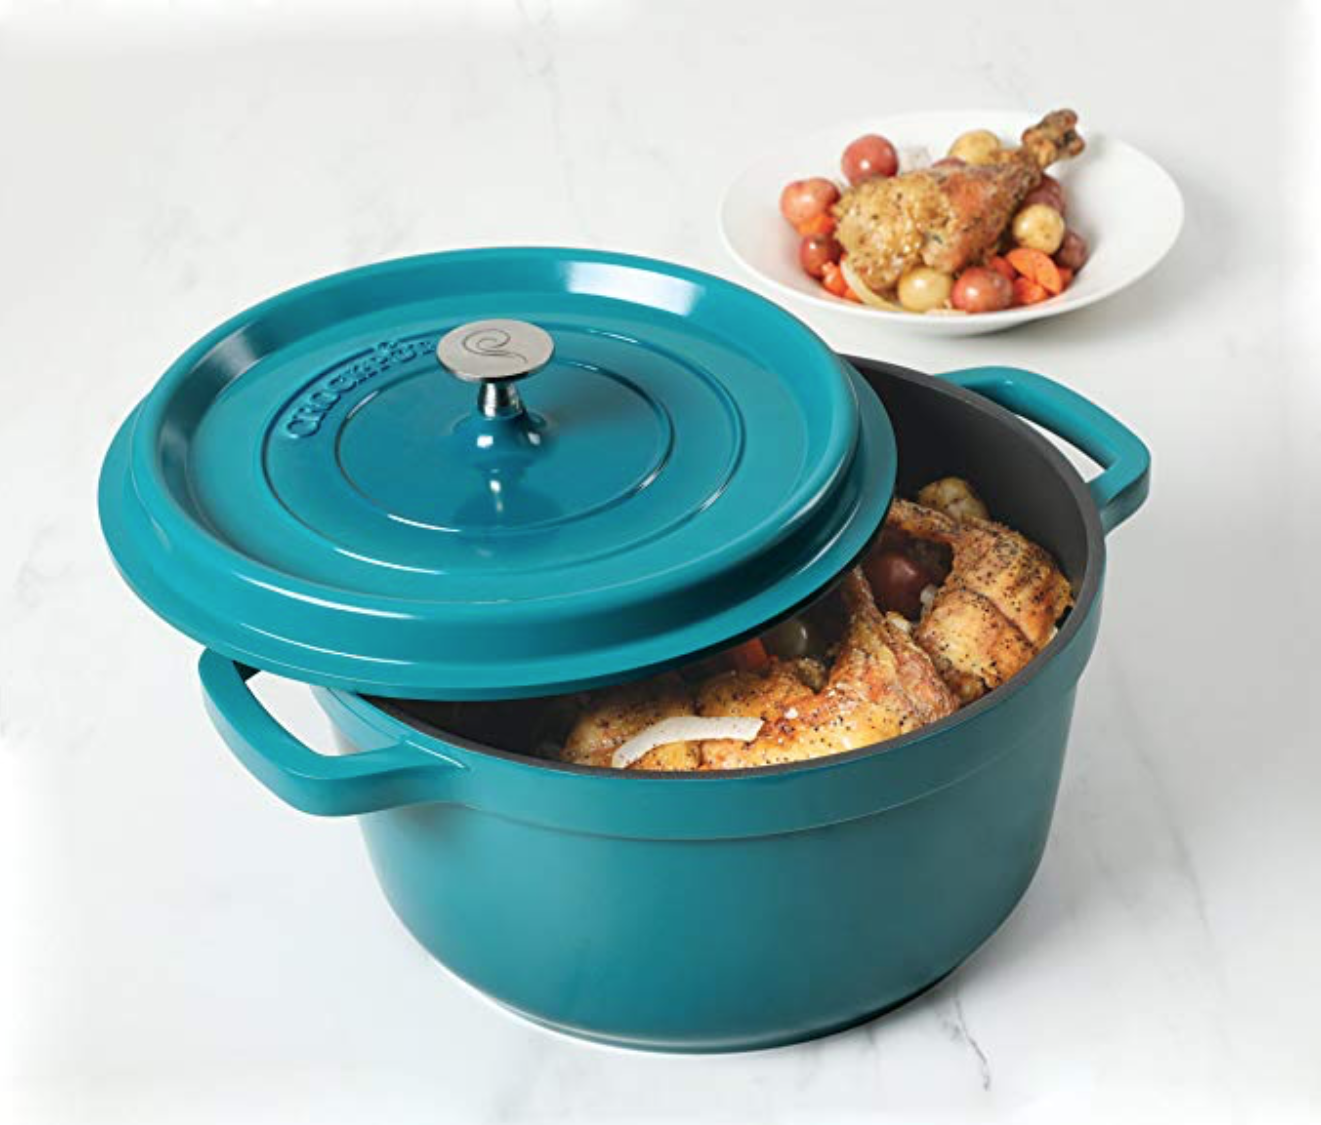 Crock Pot 5 Qt Dutch Oven With Lid Just 28 30 Deal